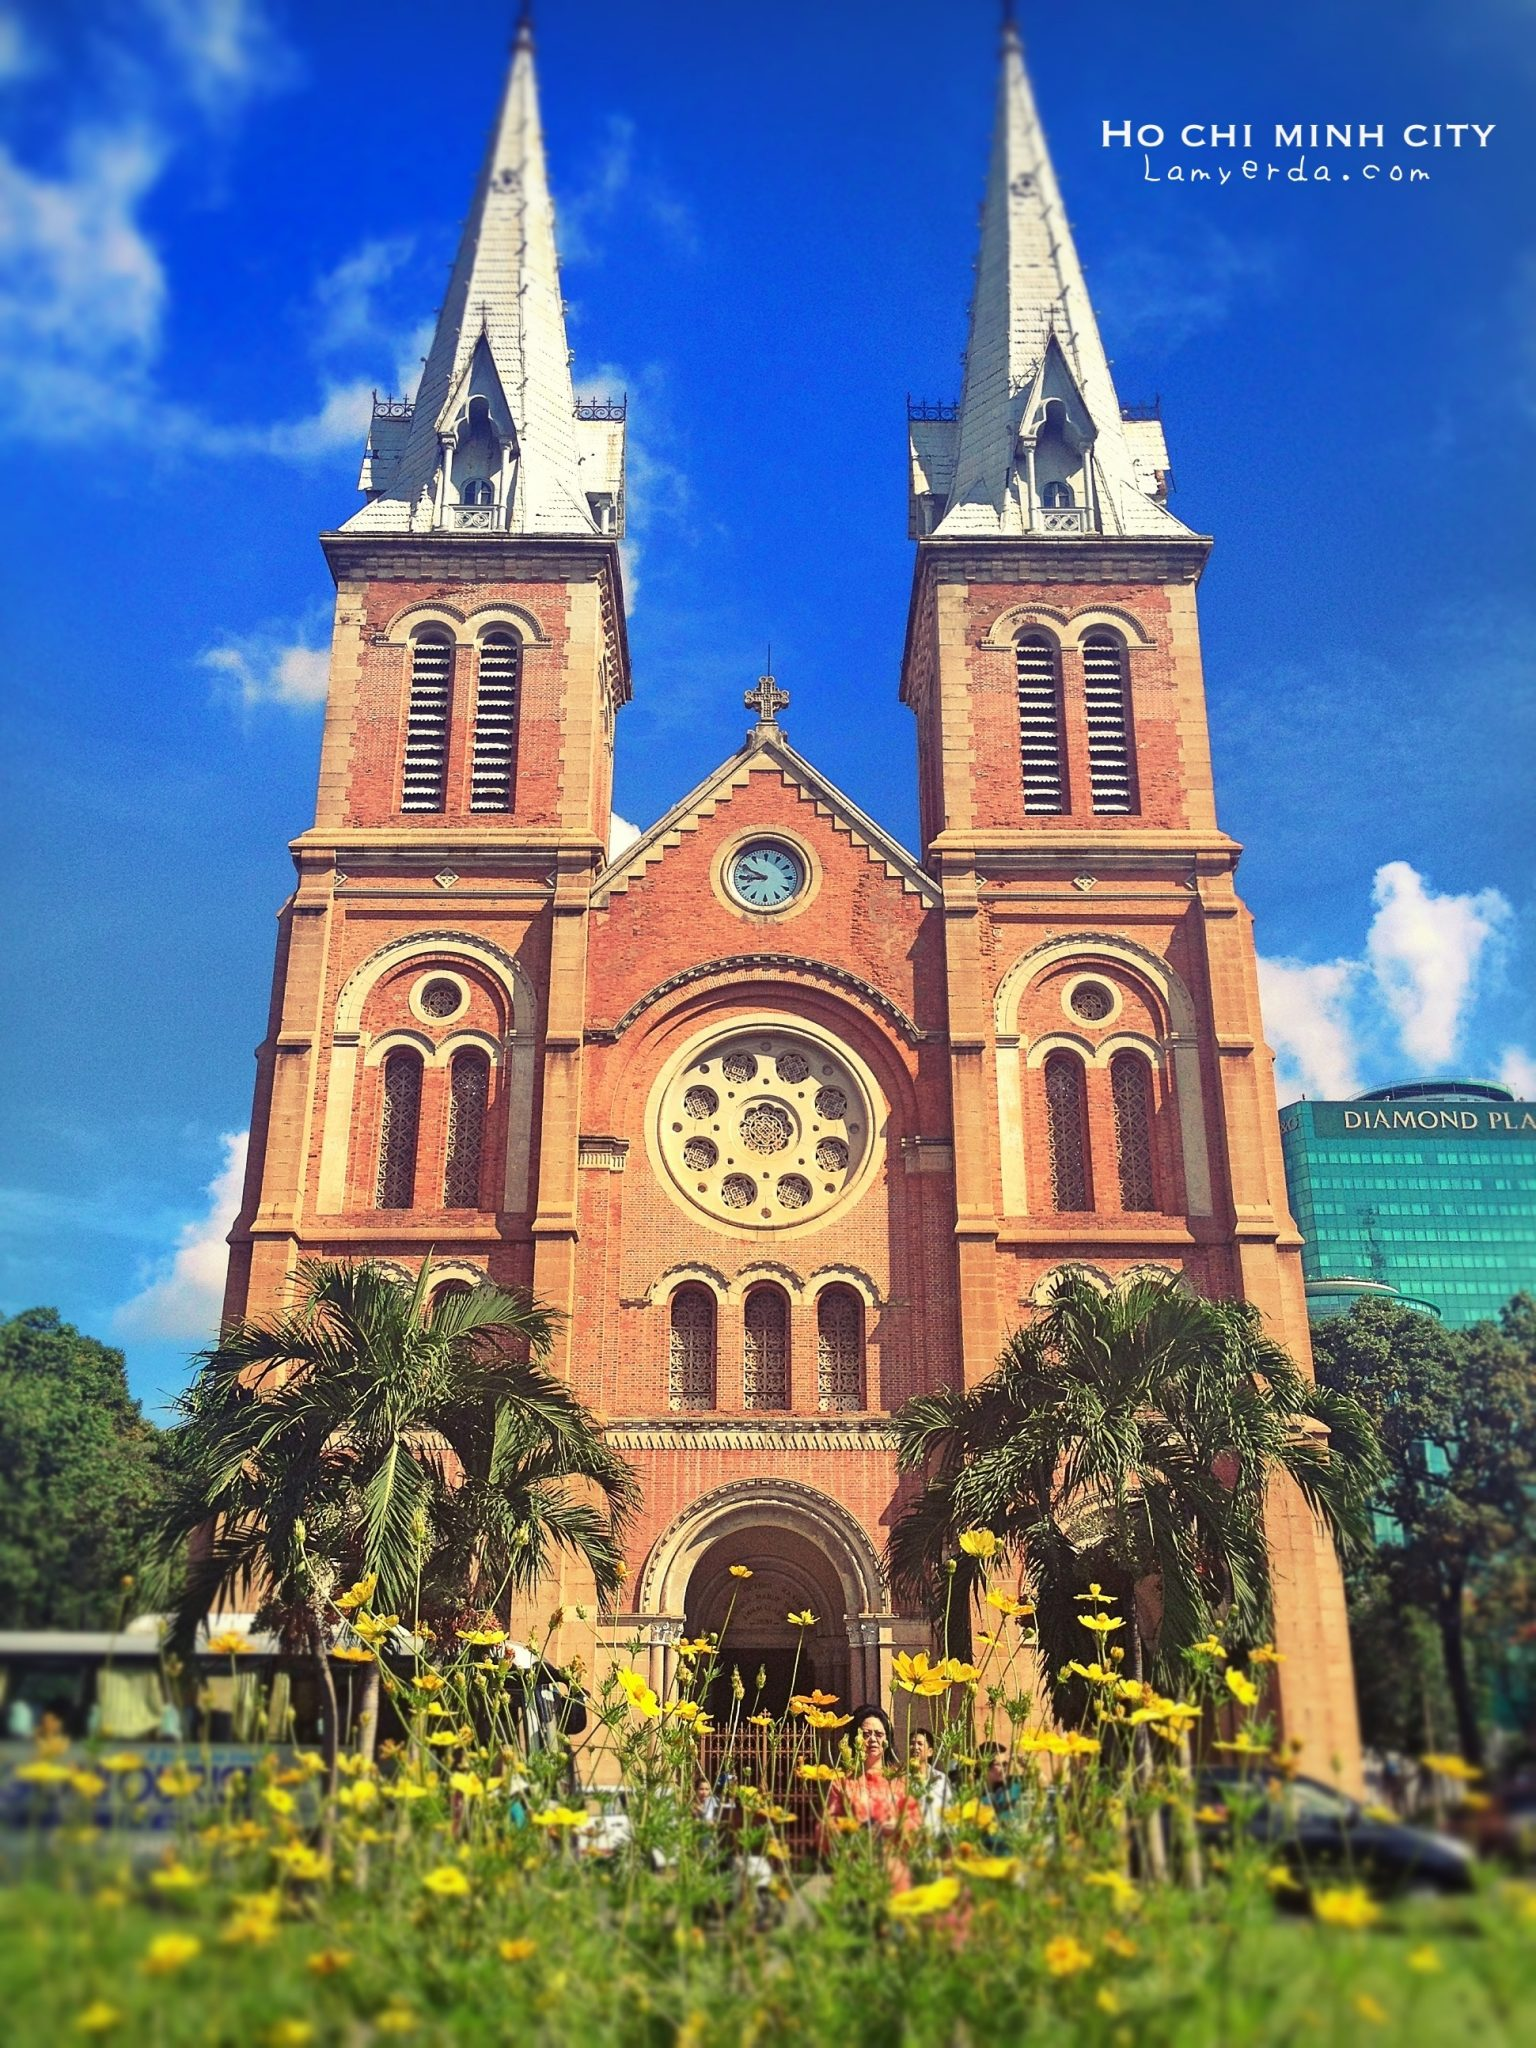 Saigon: The Notre Dame Cathedral